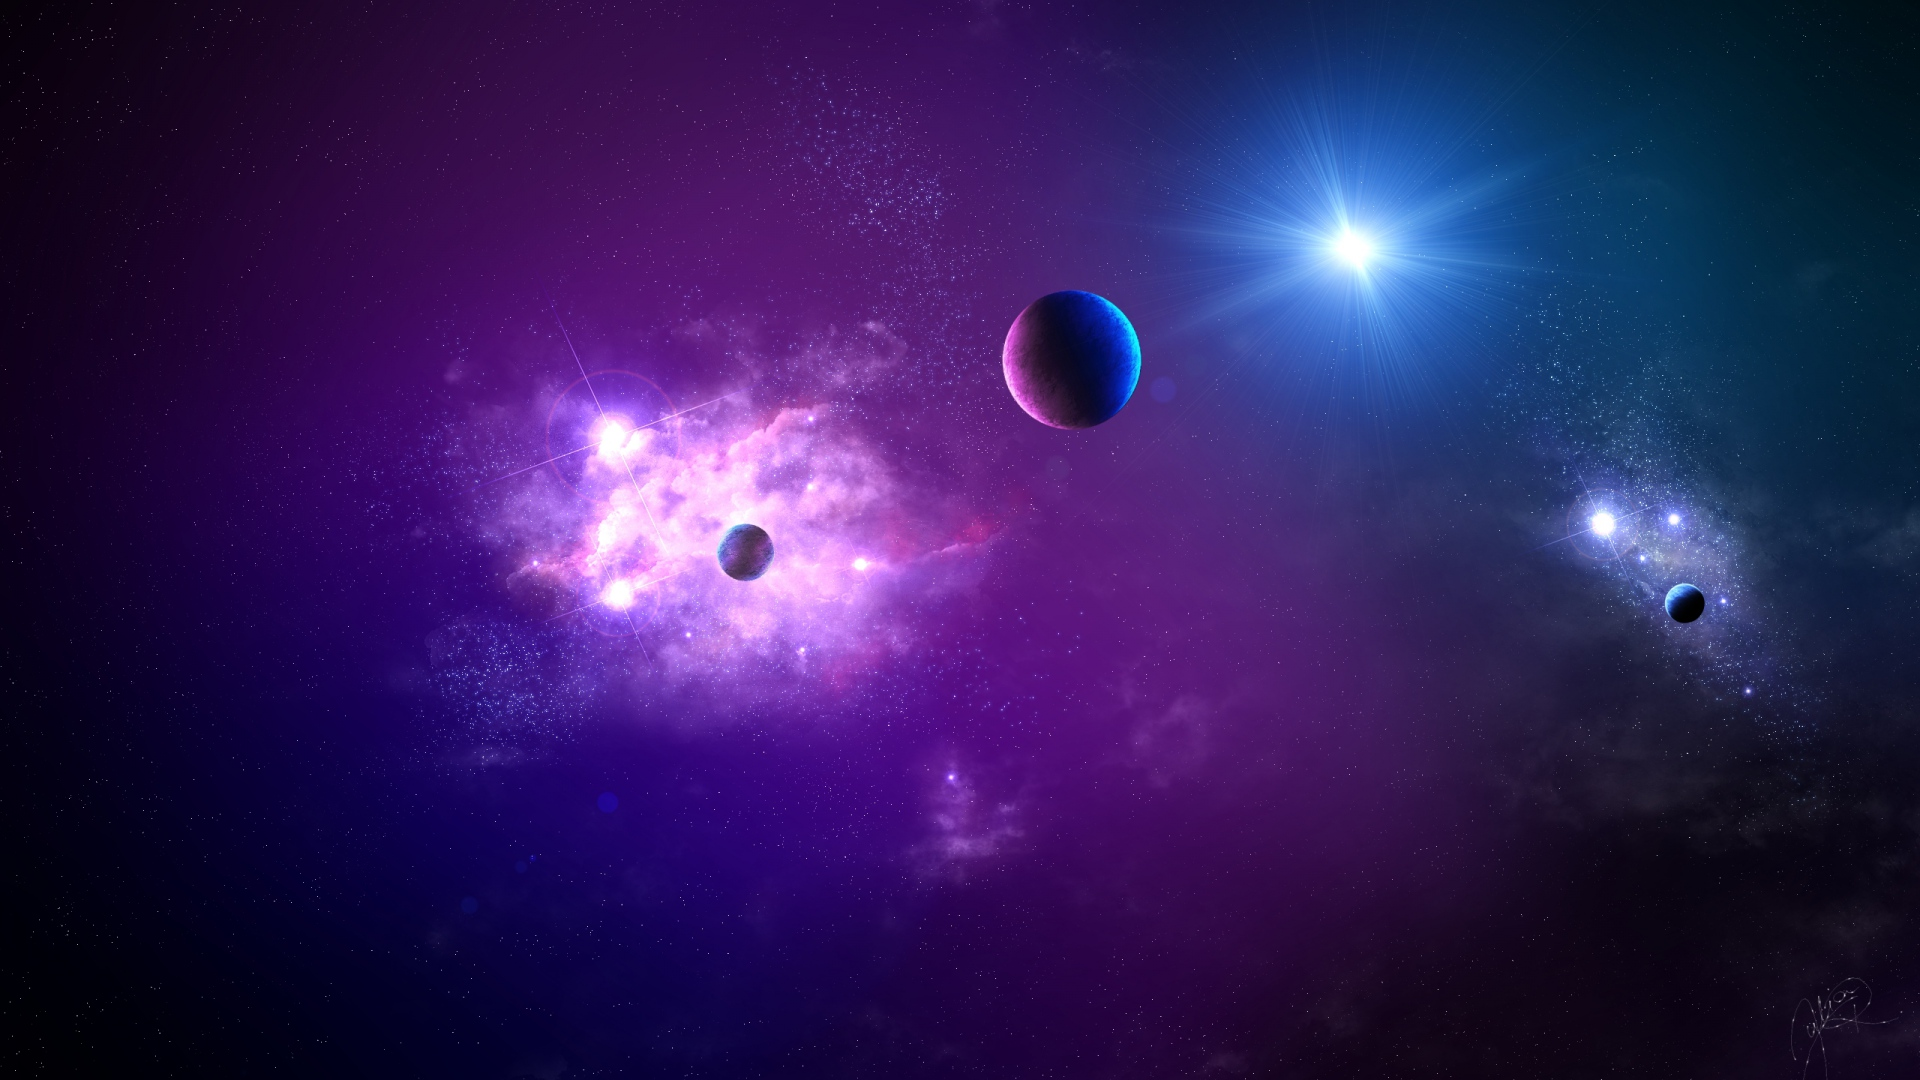 225 2259369 wallpaper planet supernova pink deep space abstract space